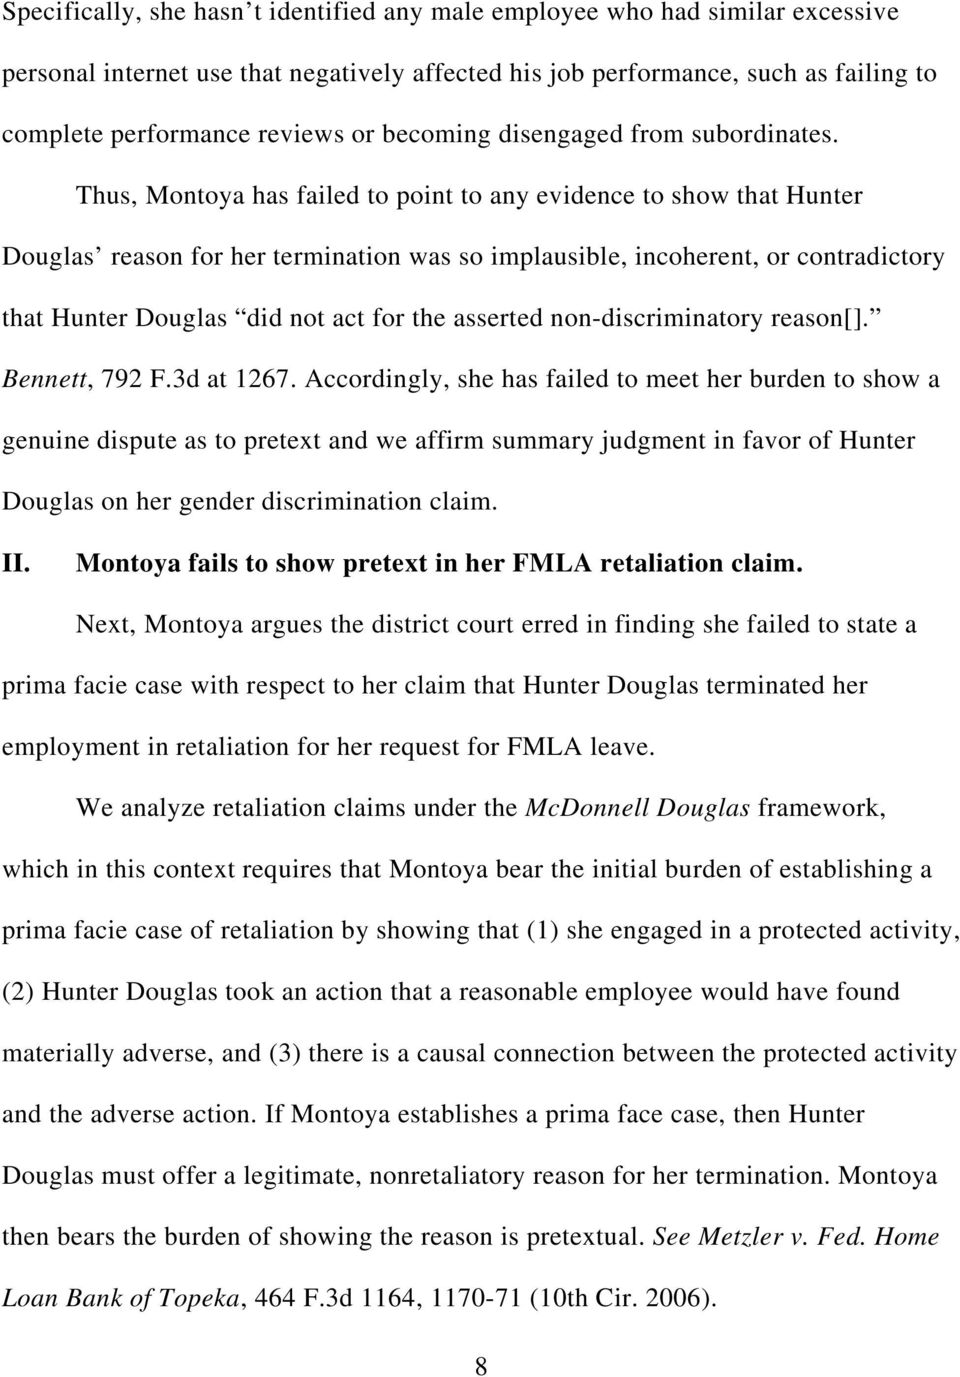 Thus, Montoya has failed to point to any evidence to show that Hunter Douglas reason for her termination was so implausible, incoherent, or contradictory that Hunter Douglas did not act for the